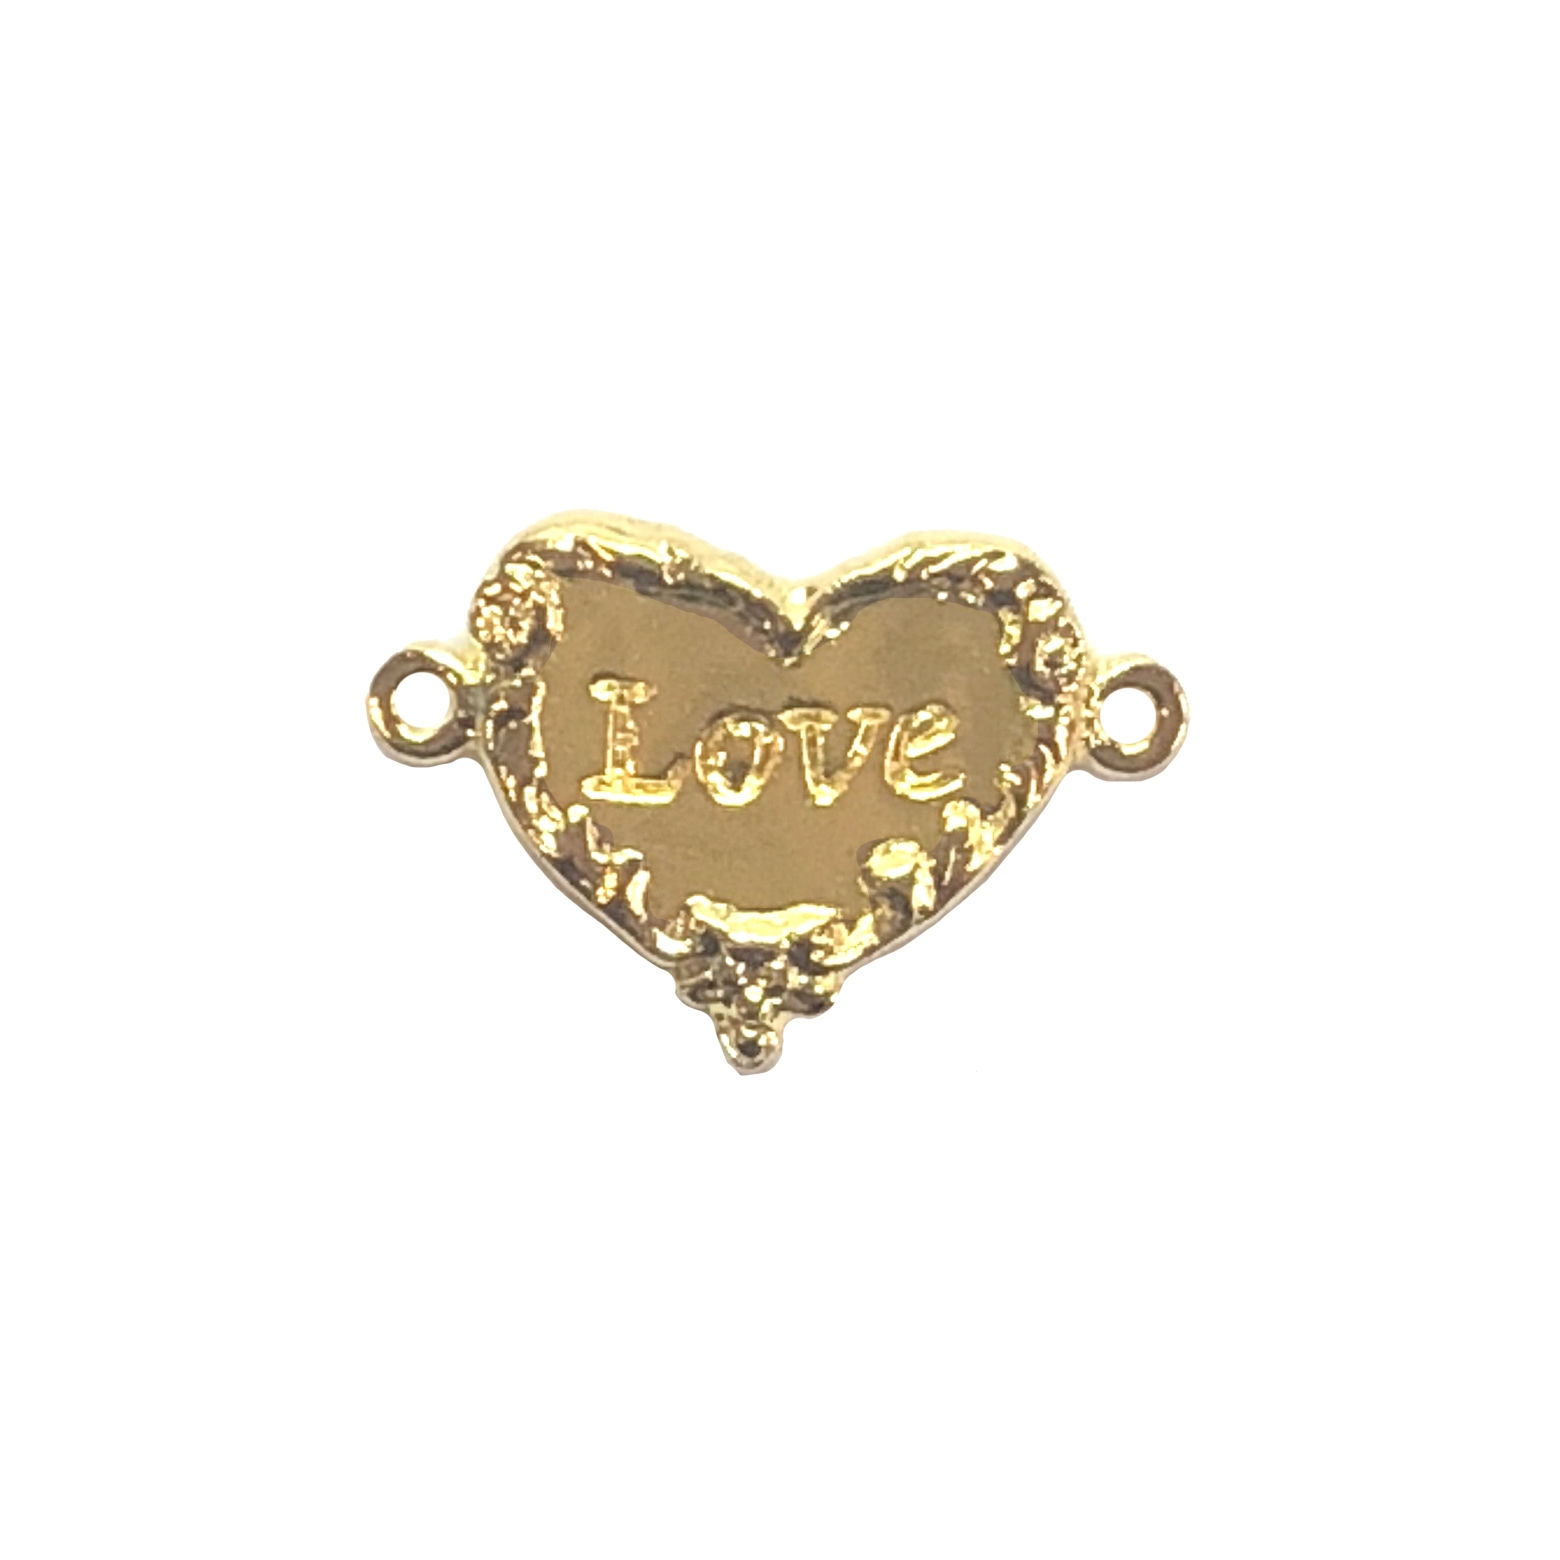 Victorian heart love connector, 22K gold finish pewter, love inscription, love heart, heart connector, vintage style, B'sue by 1928, lead free pewter castings, cast pewter jewelry findings, US made, heart, 1928 Company, B'sue Boutiques, 18x20mm, 08541